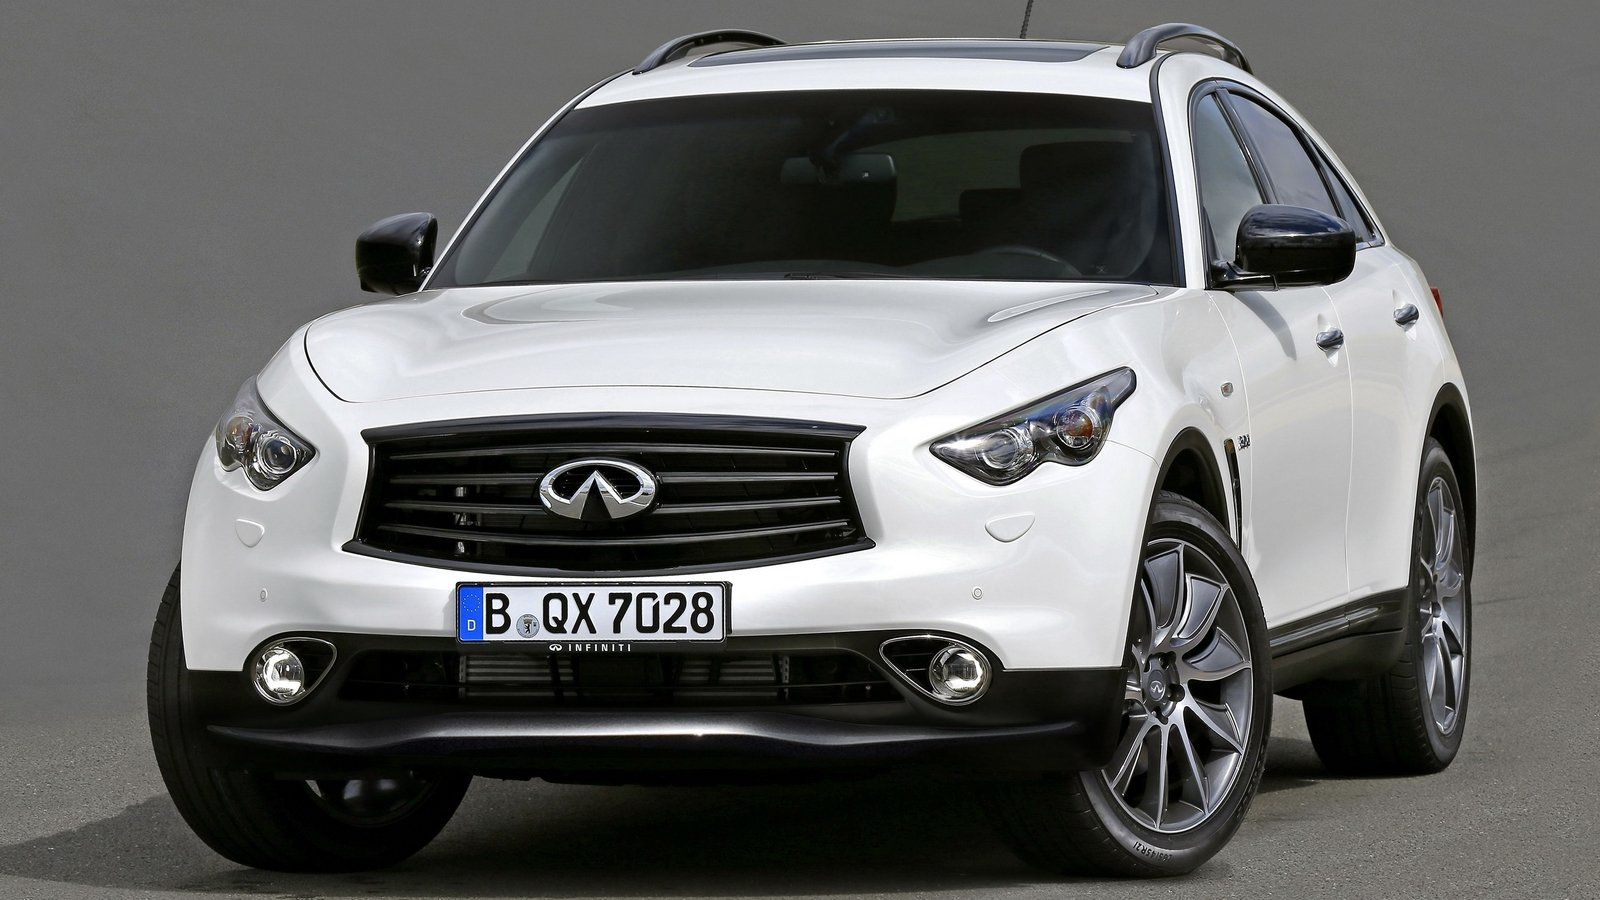 2016 infiniti qx70 white 200 interior and exterior images. Black Bedroom Furniture Sets. Home Design Ideas